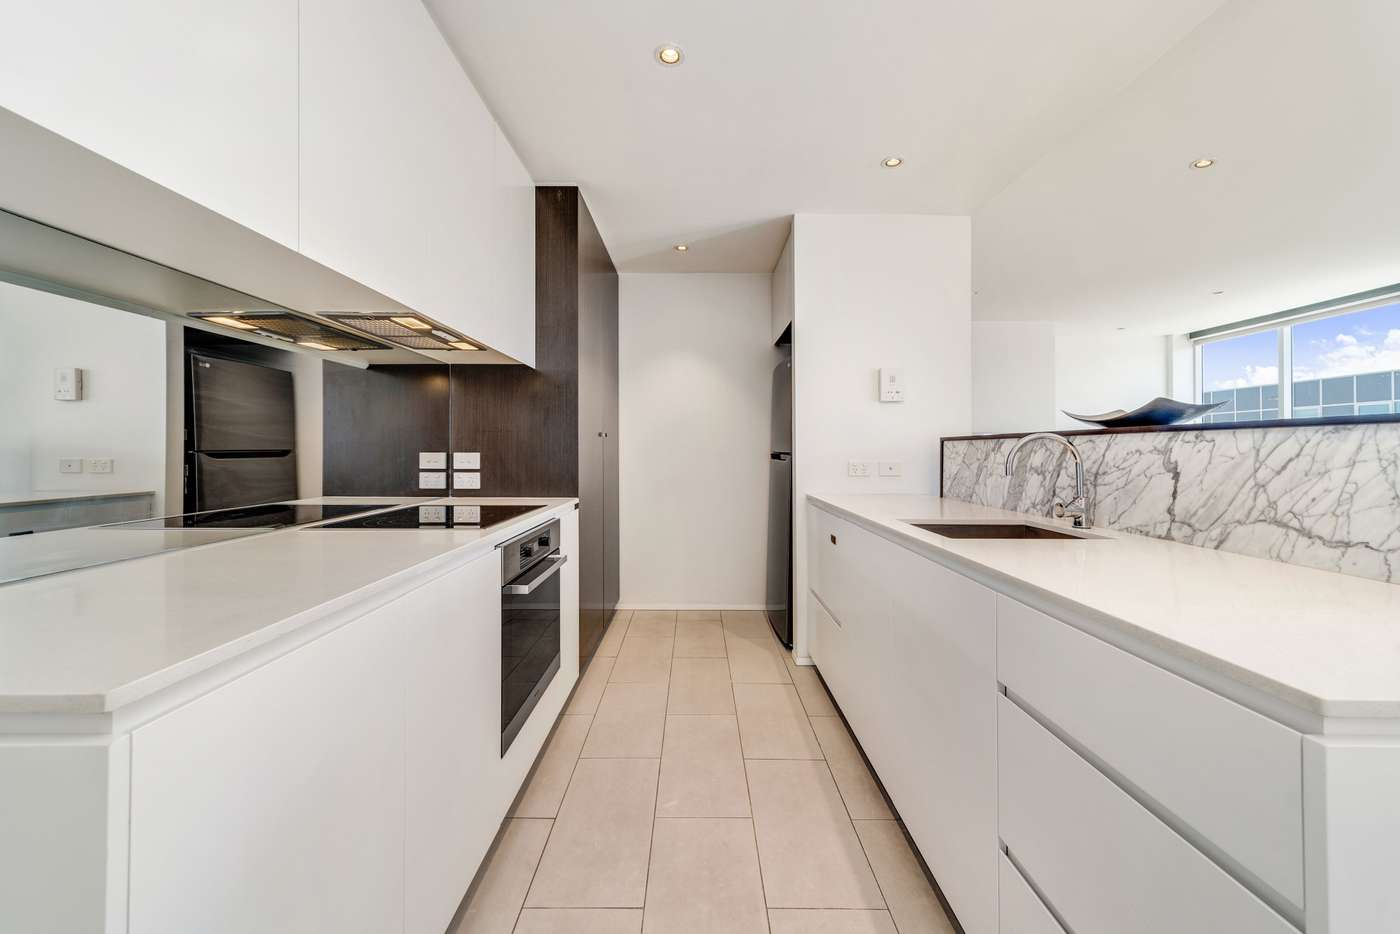 Sixth view of Homely apartment listing, 36/5 Sydney Avenue, Barton ACT 2600